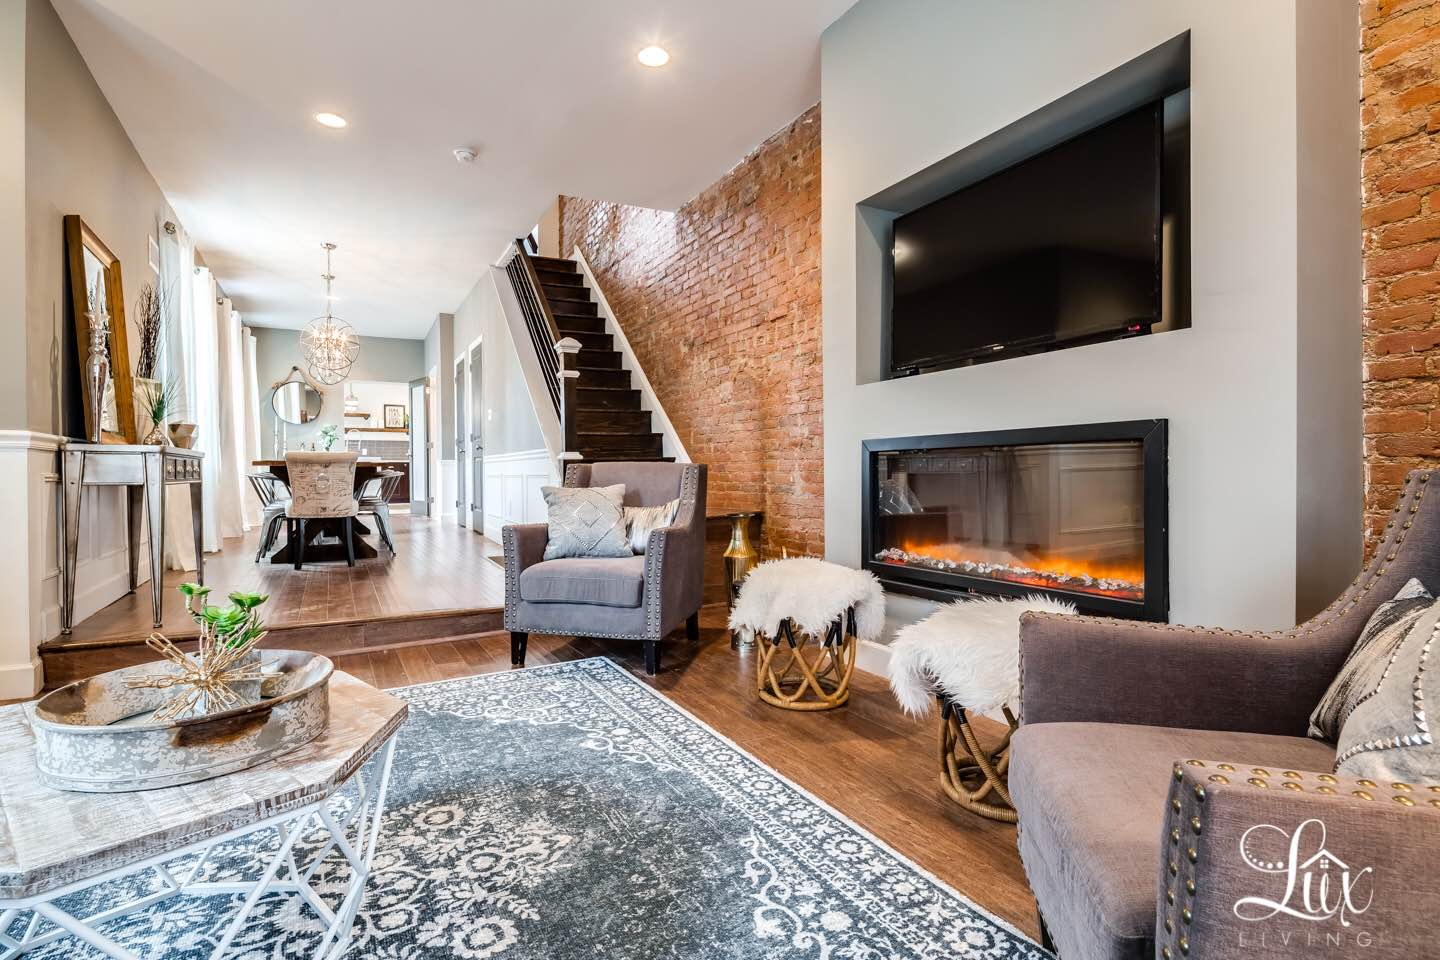 7 Philly homes for sale with lovely fireplaces - Curbed Philly